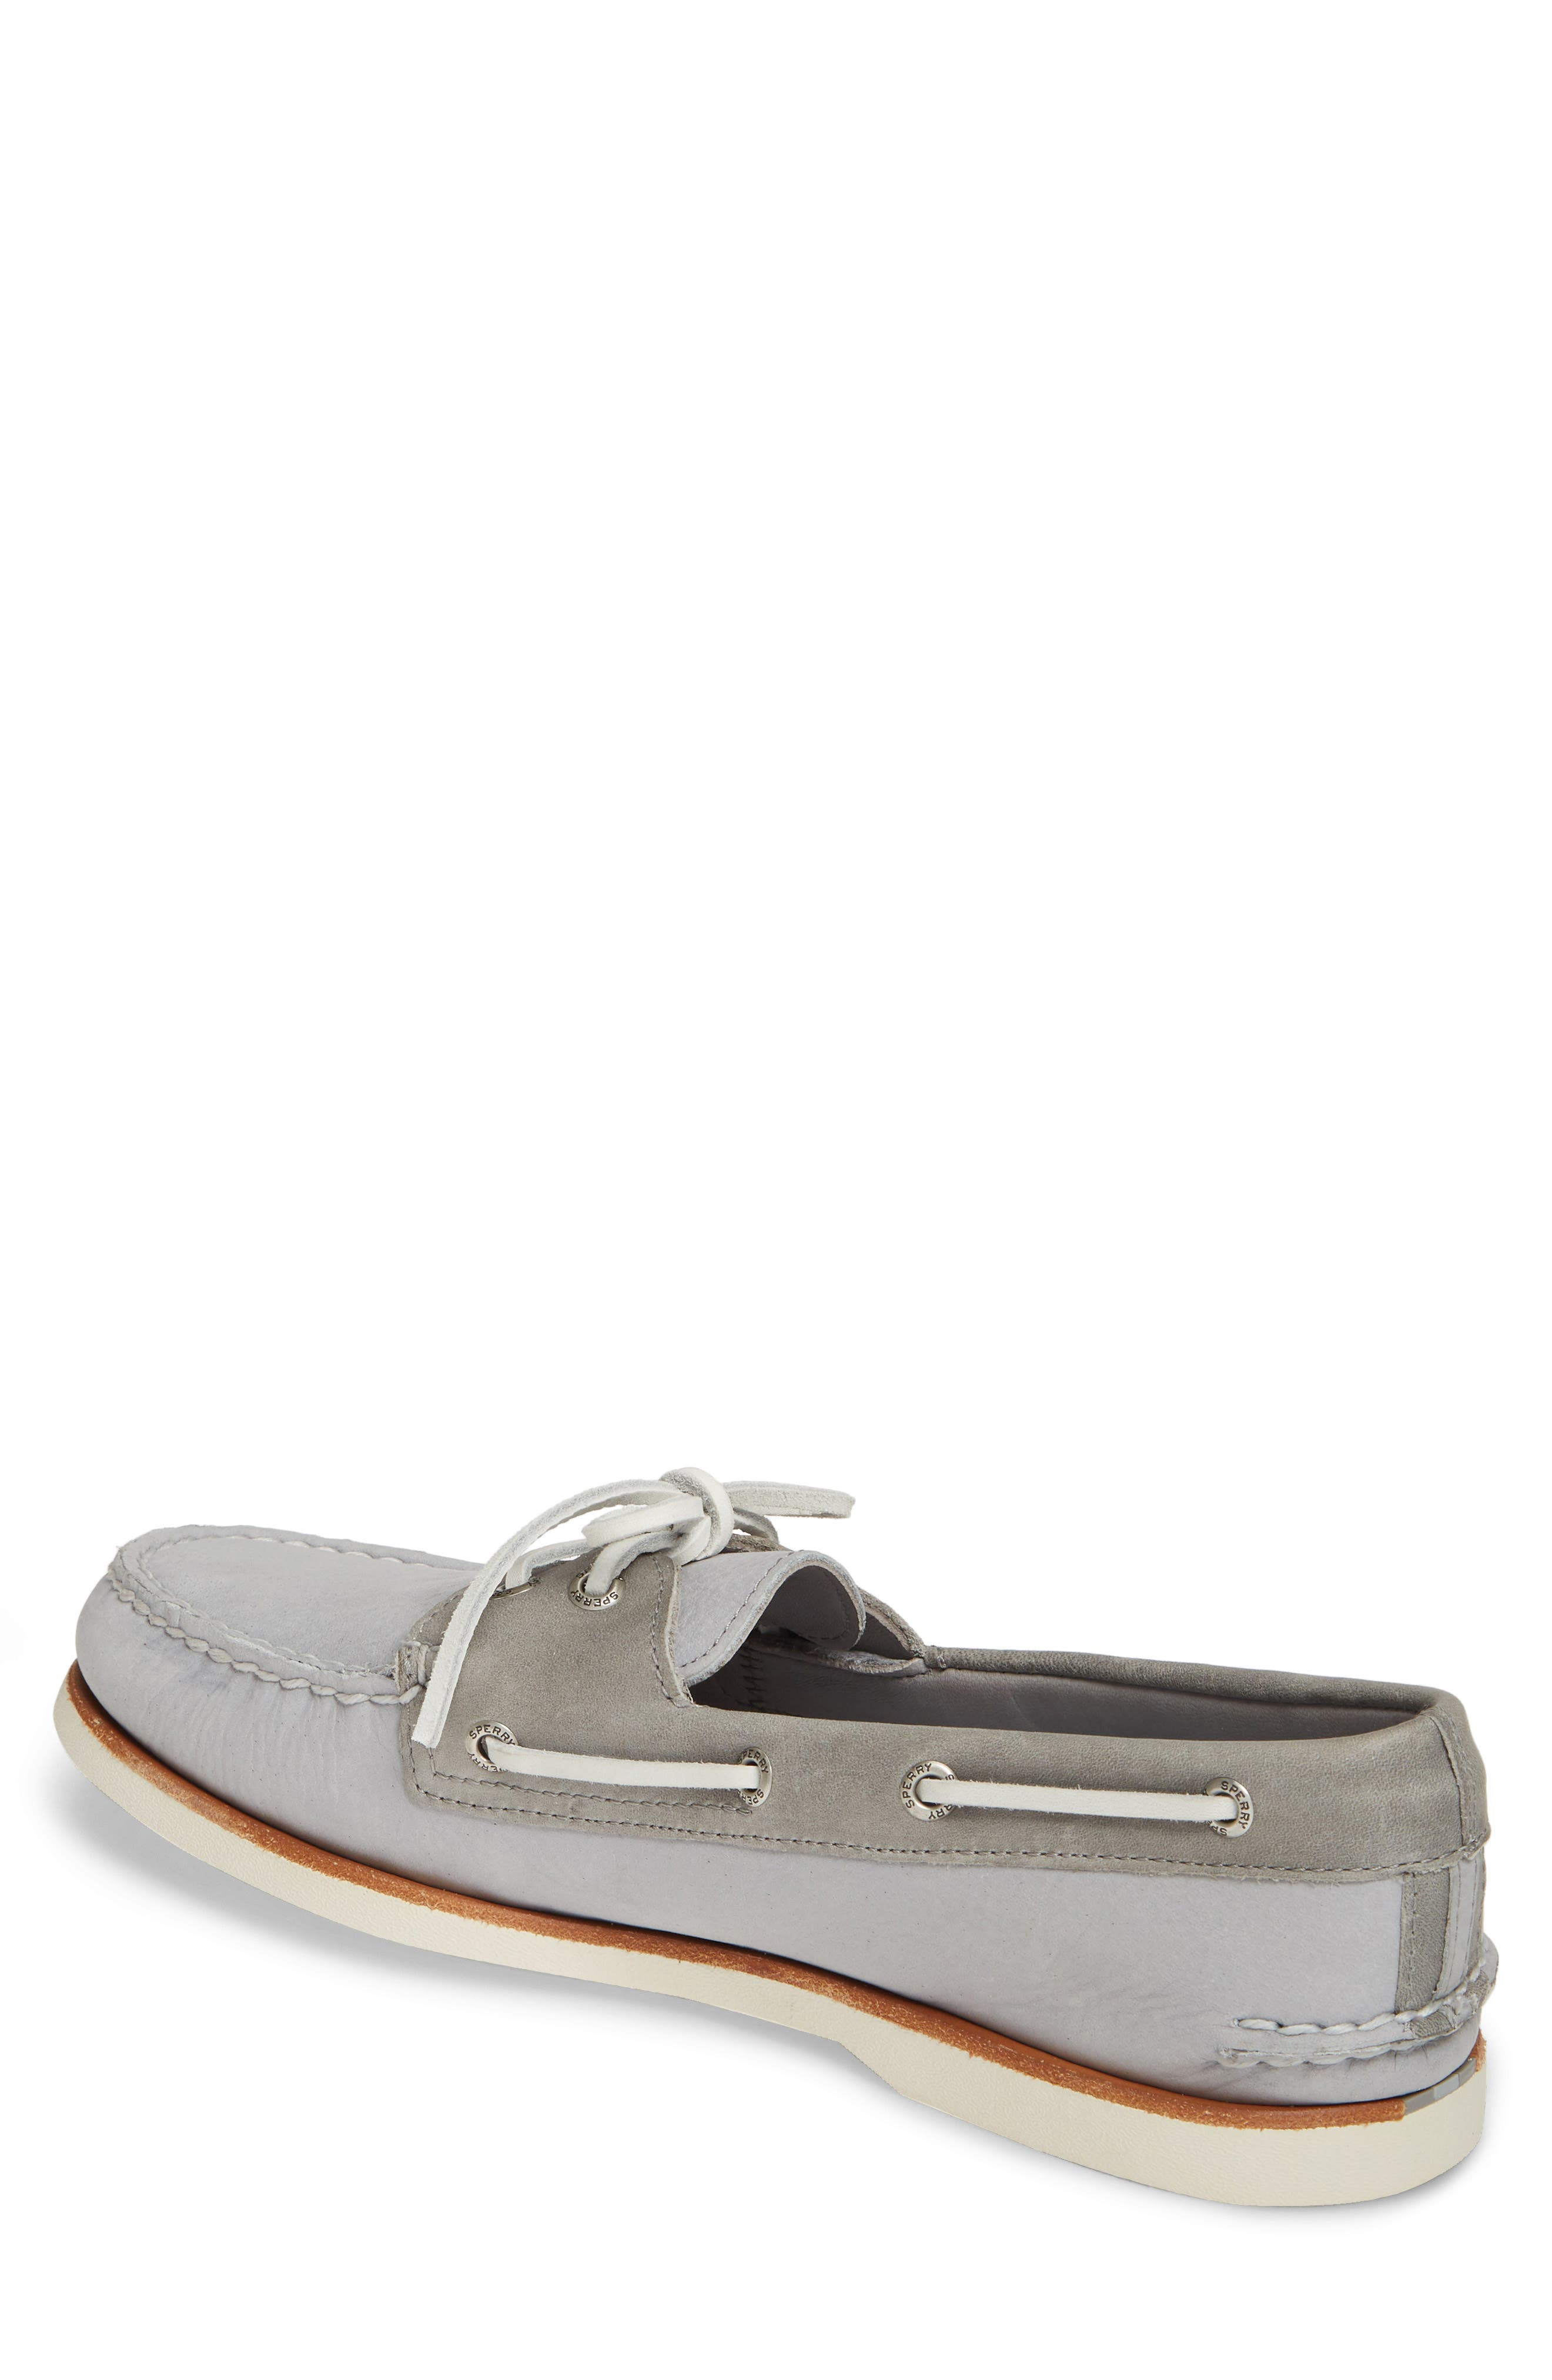 SPERRY, 'Gold Cup - Authentic Original' Boat Shoe, Alternate thumbnail 2, color, GREY/GREY LEATHER